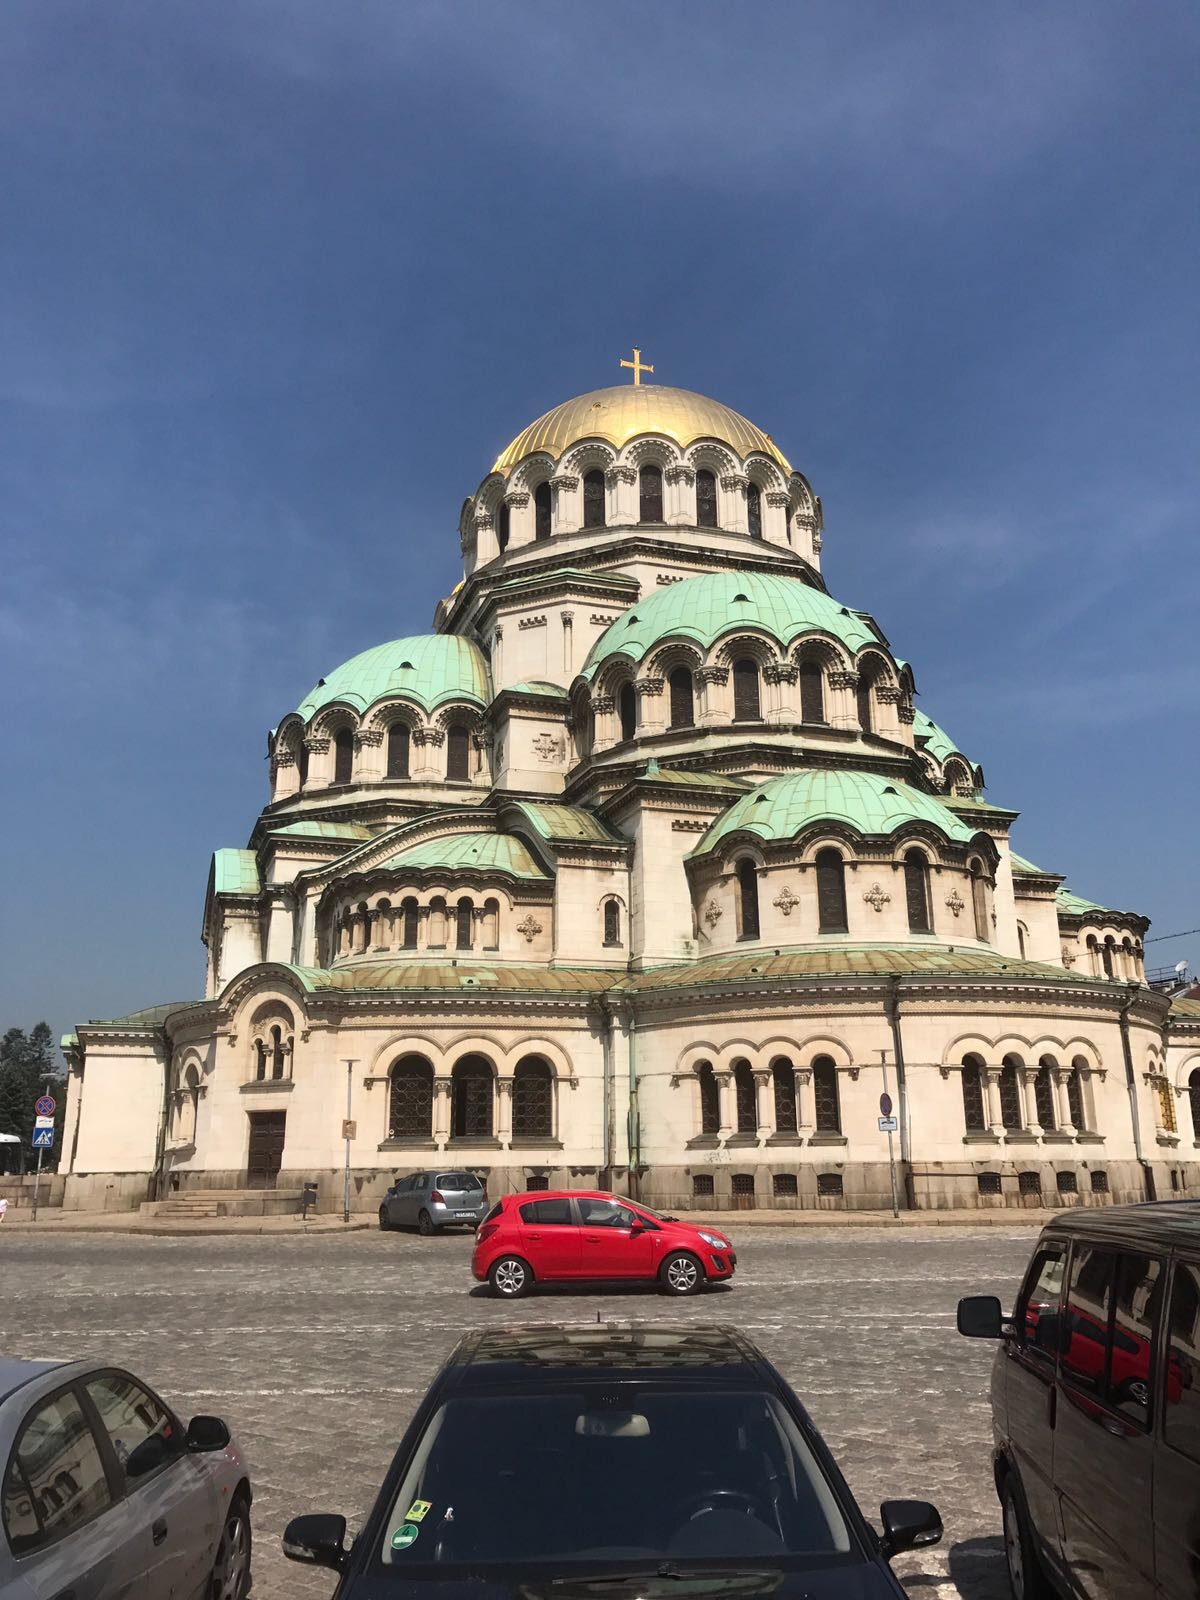 Sofia itinerary, Alexander Nevsky Cathedral in Sofia (Bulgaria) with a red car in the foreground